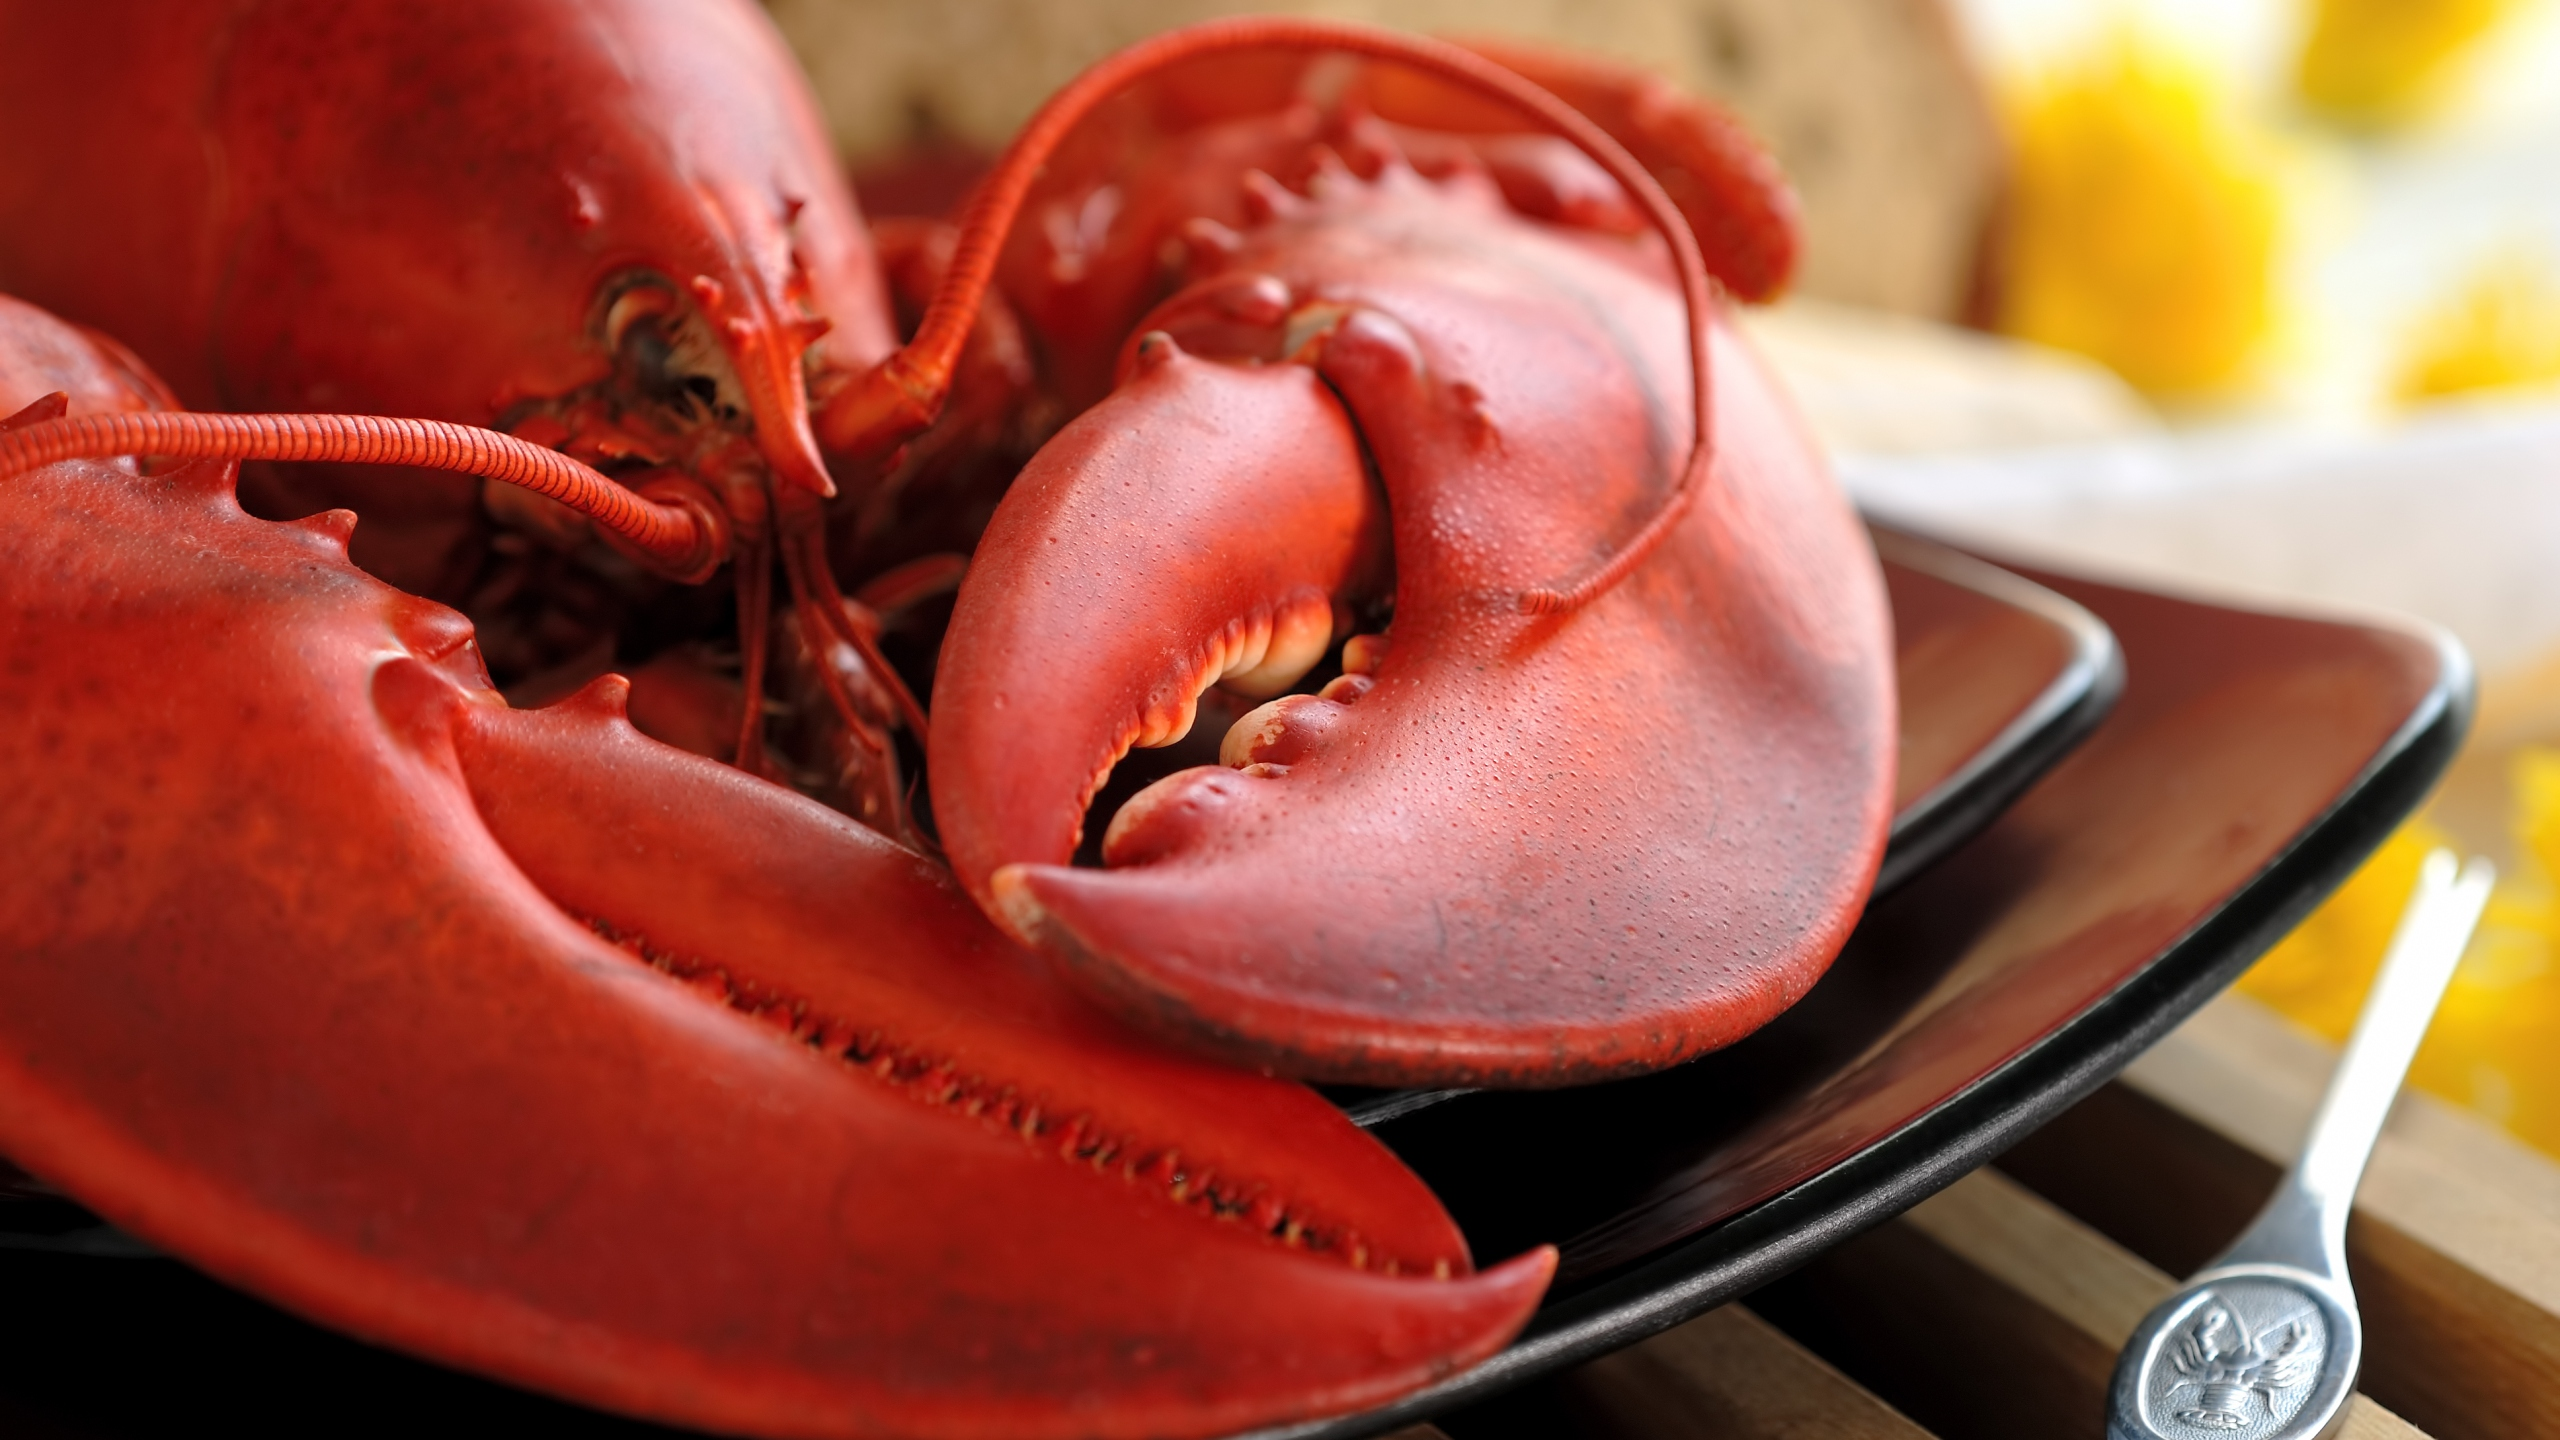 A boiled lobster is seen in this file photo. (Credit: iStock/Getty Images Plus)